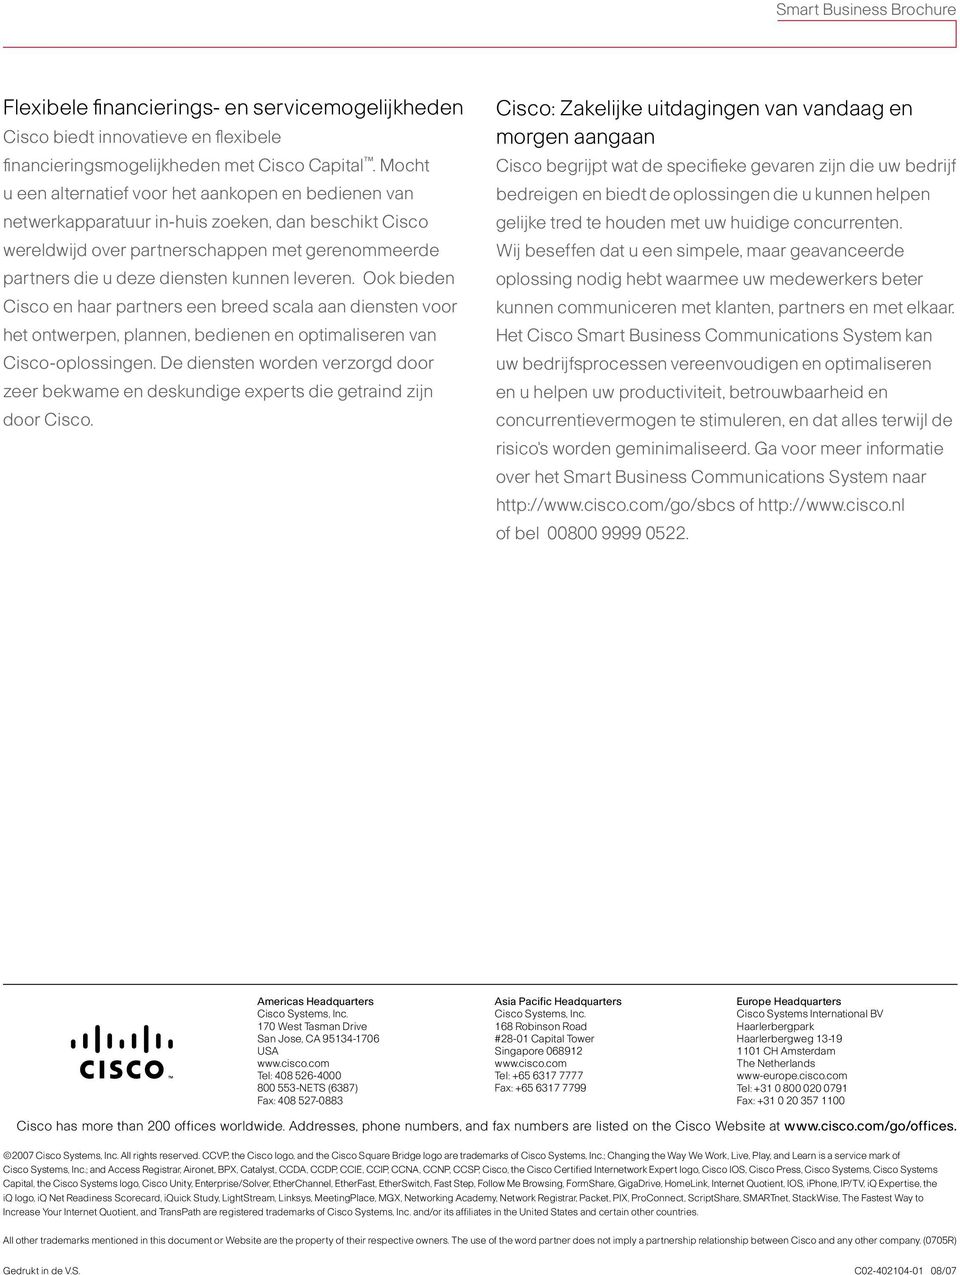 Ook bi Cisco haar partners e breed scala aan dist voor h ontwerp, plann, bedi optimaliser Cisco-oplossing. De dist worn verzorgd door zeer bekwame skundige experts die graind zijn door Cisco.